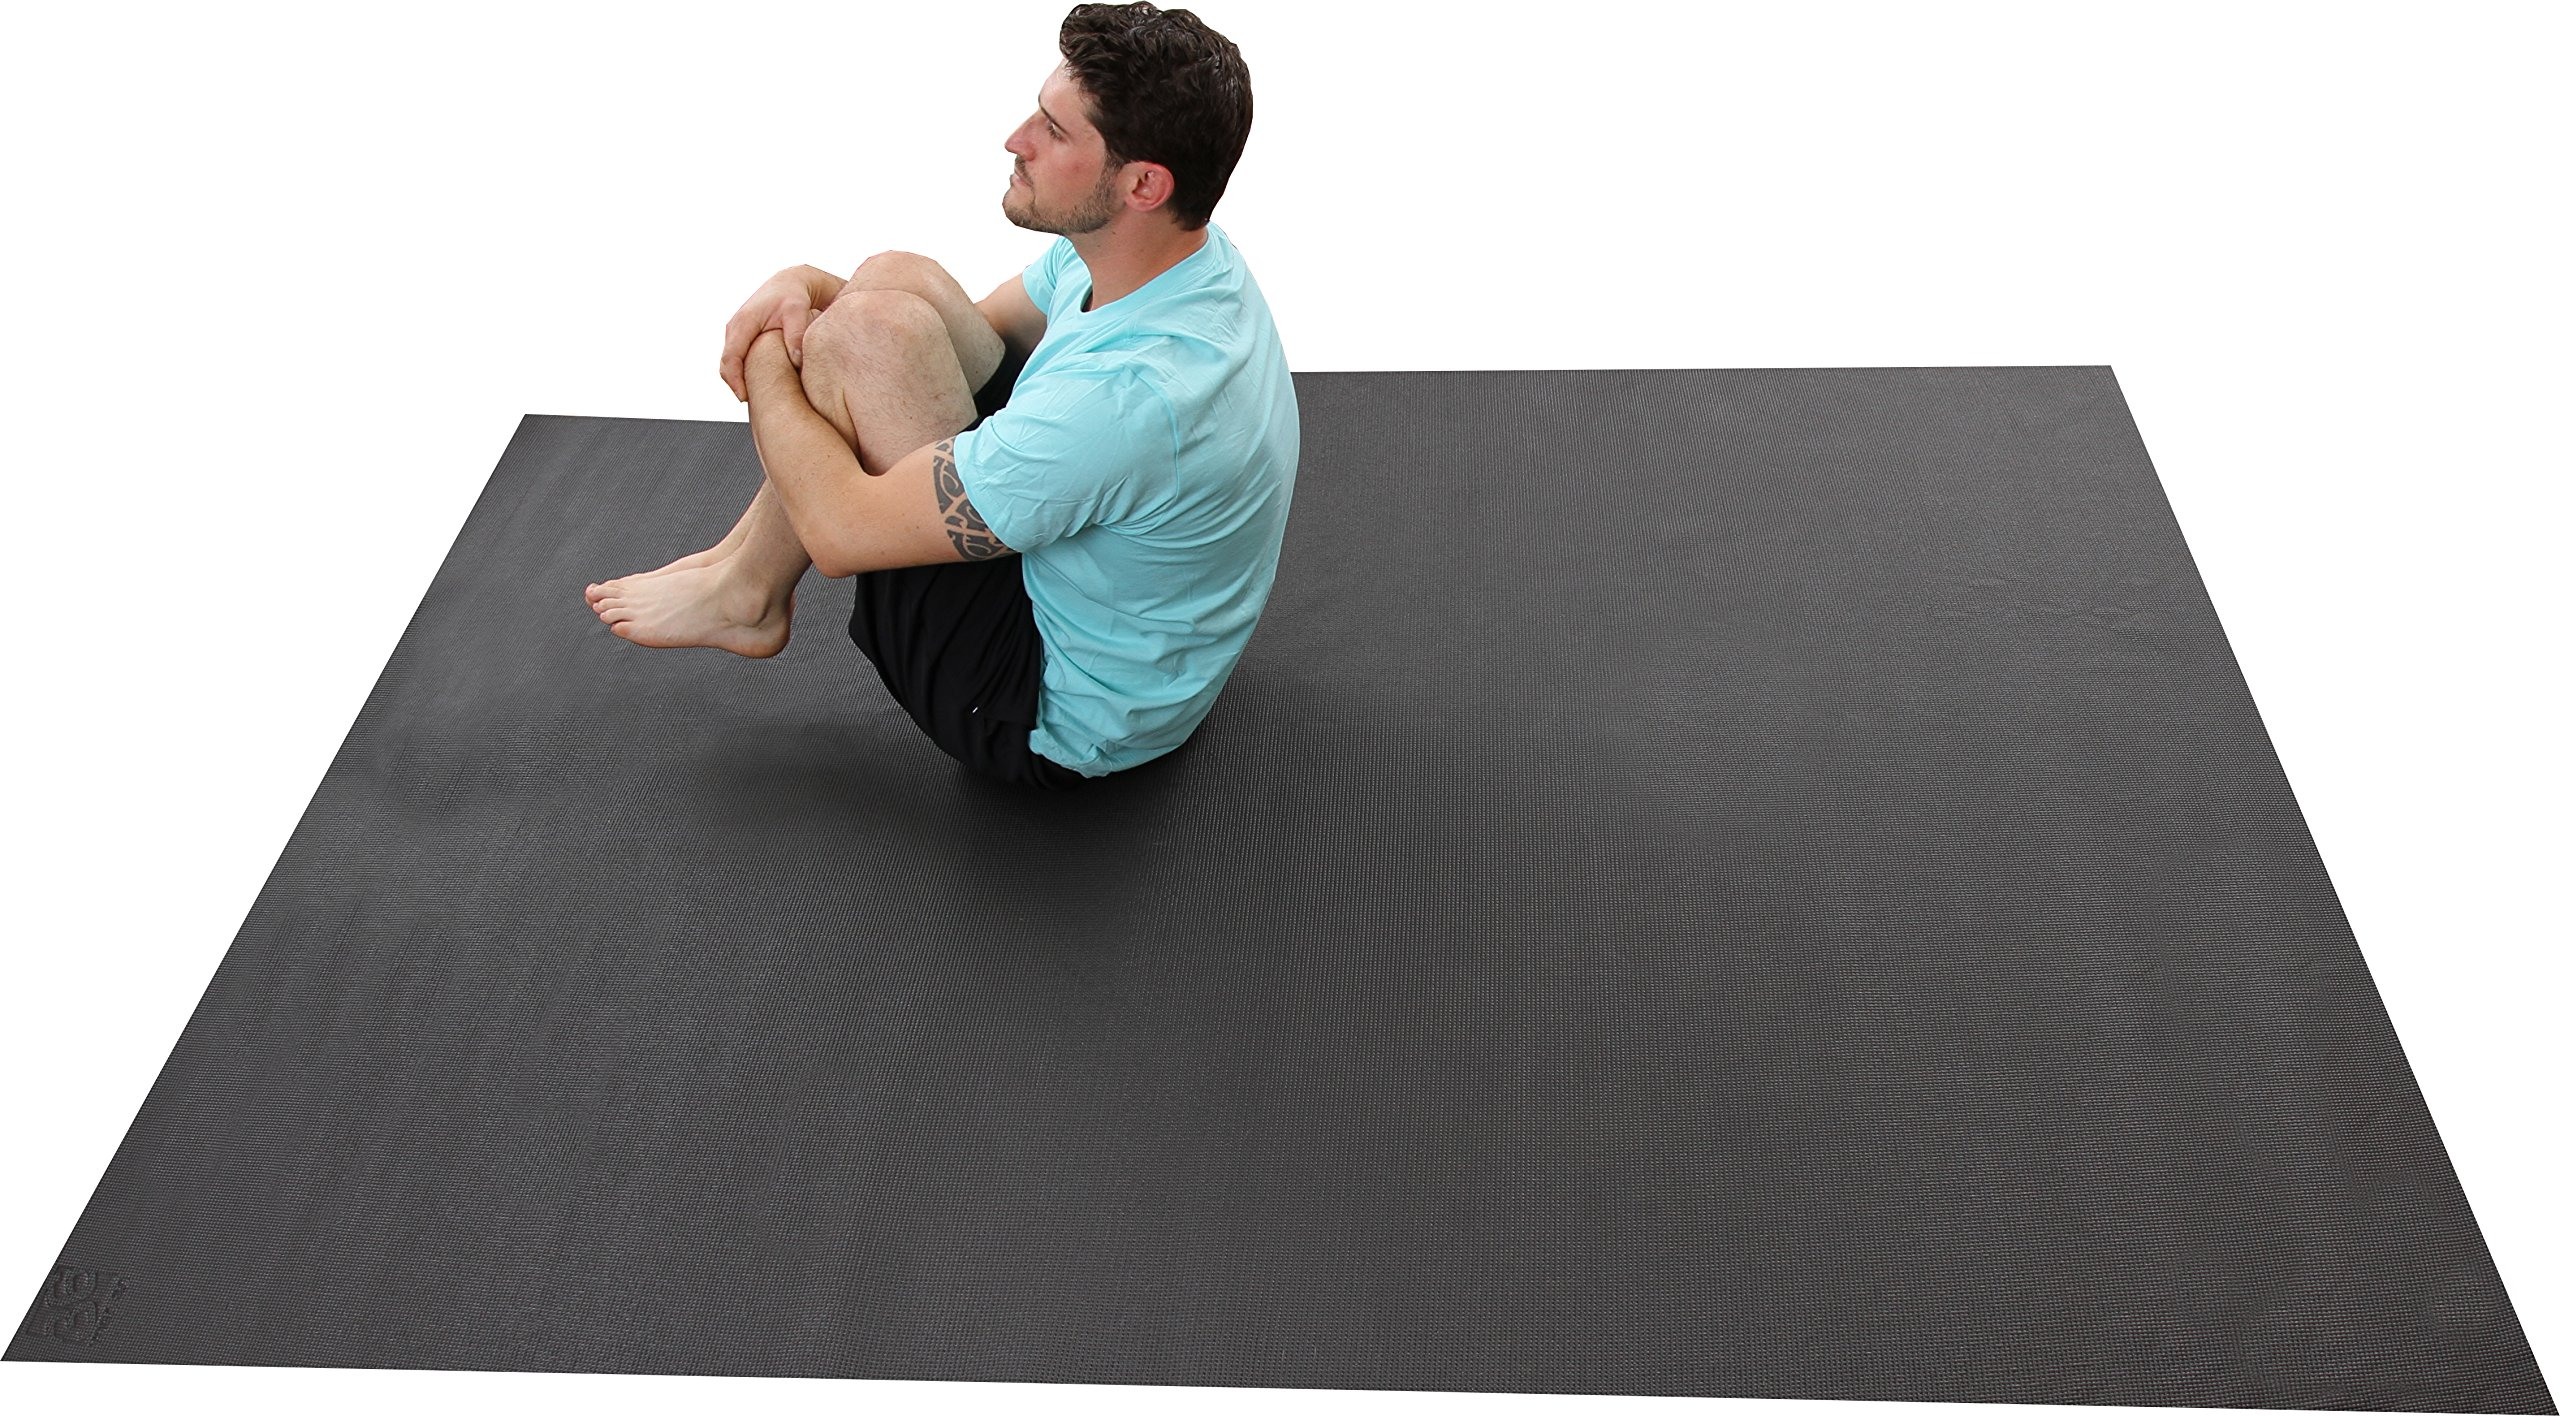 The Largest YOGA Mat Available. 8 Ft x 6 Ft x 6mm Thick. Ideal For Home Yoga Studios. Made From The Highest Grade Premium Non-Toxic Materials. Designed for Home-based Yoga, Stretching, Or Meditation. by Square36 (Image #5)